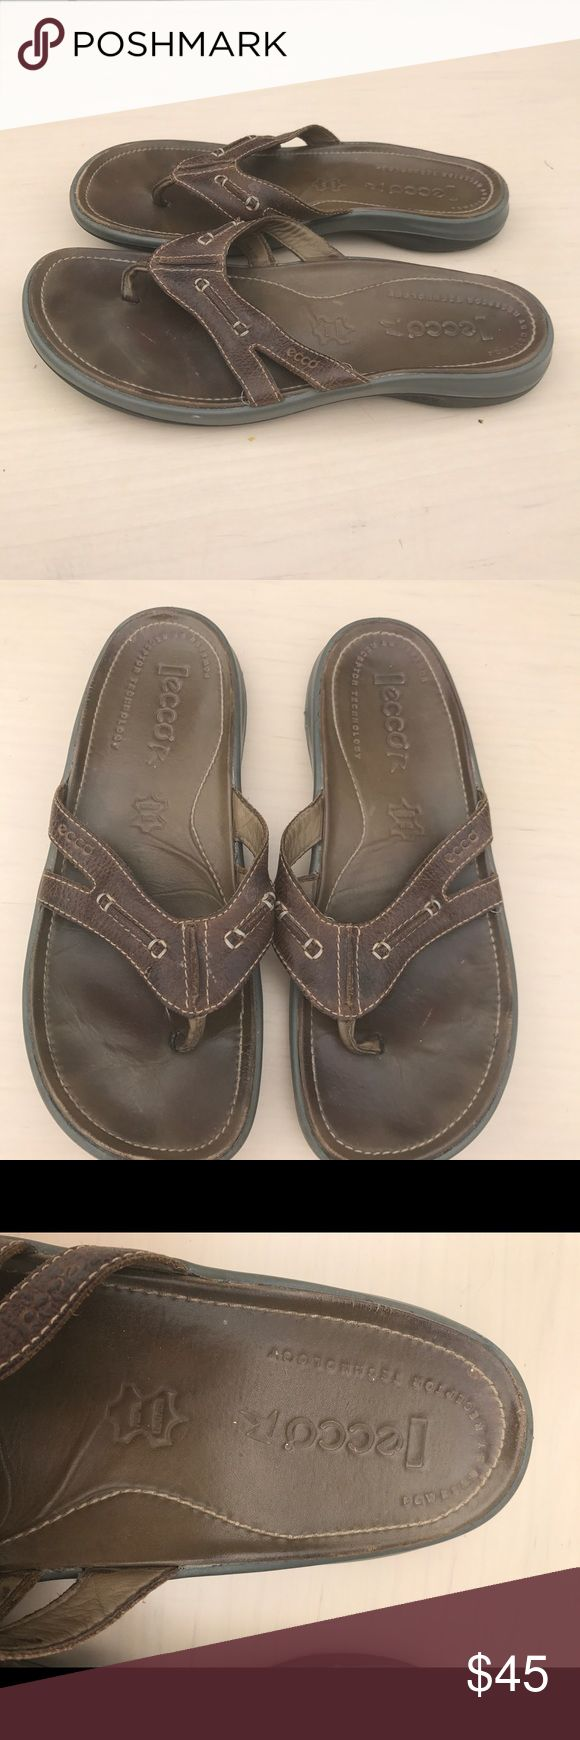 Ecco sandals like new Euc like new all leather says 42  fits an 11/11.5 Ecco Shoes Sandals & Flip-Flops